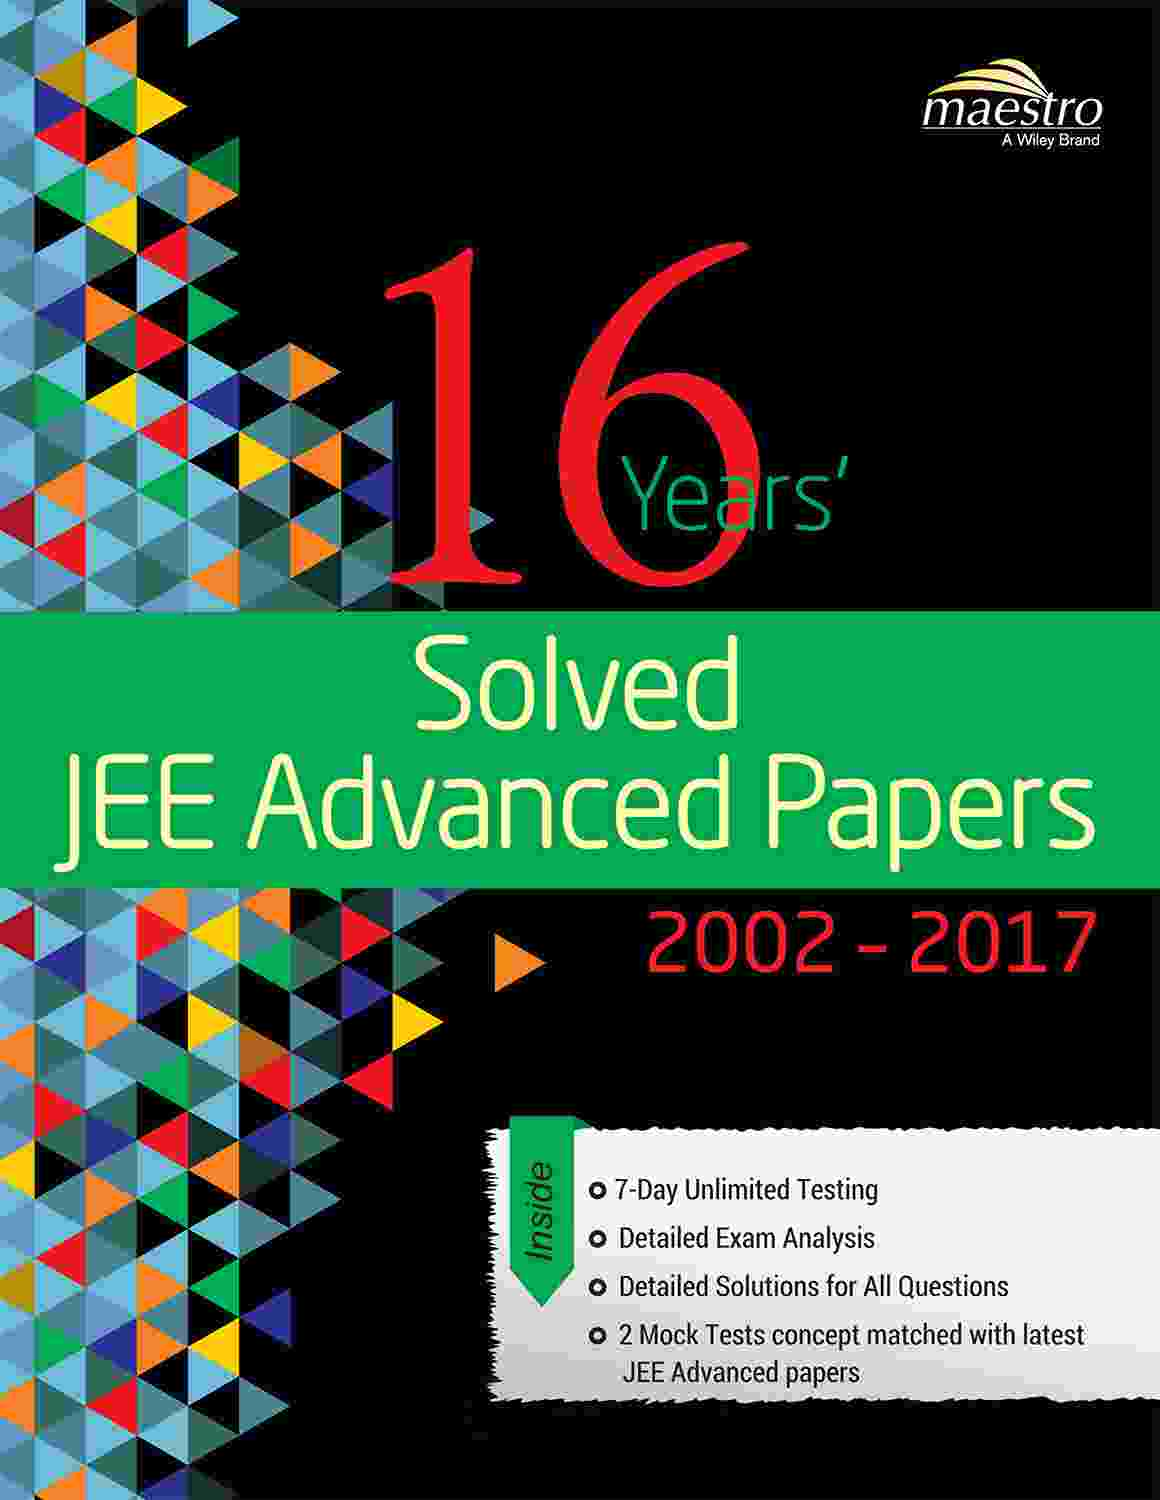 Wiley's 16 Years' Solved JEE Advanced Papers, 2002-2017